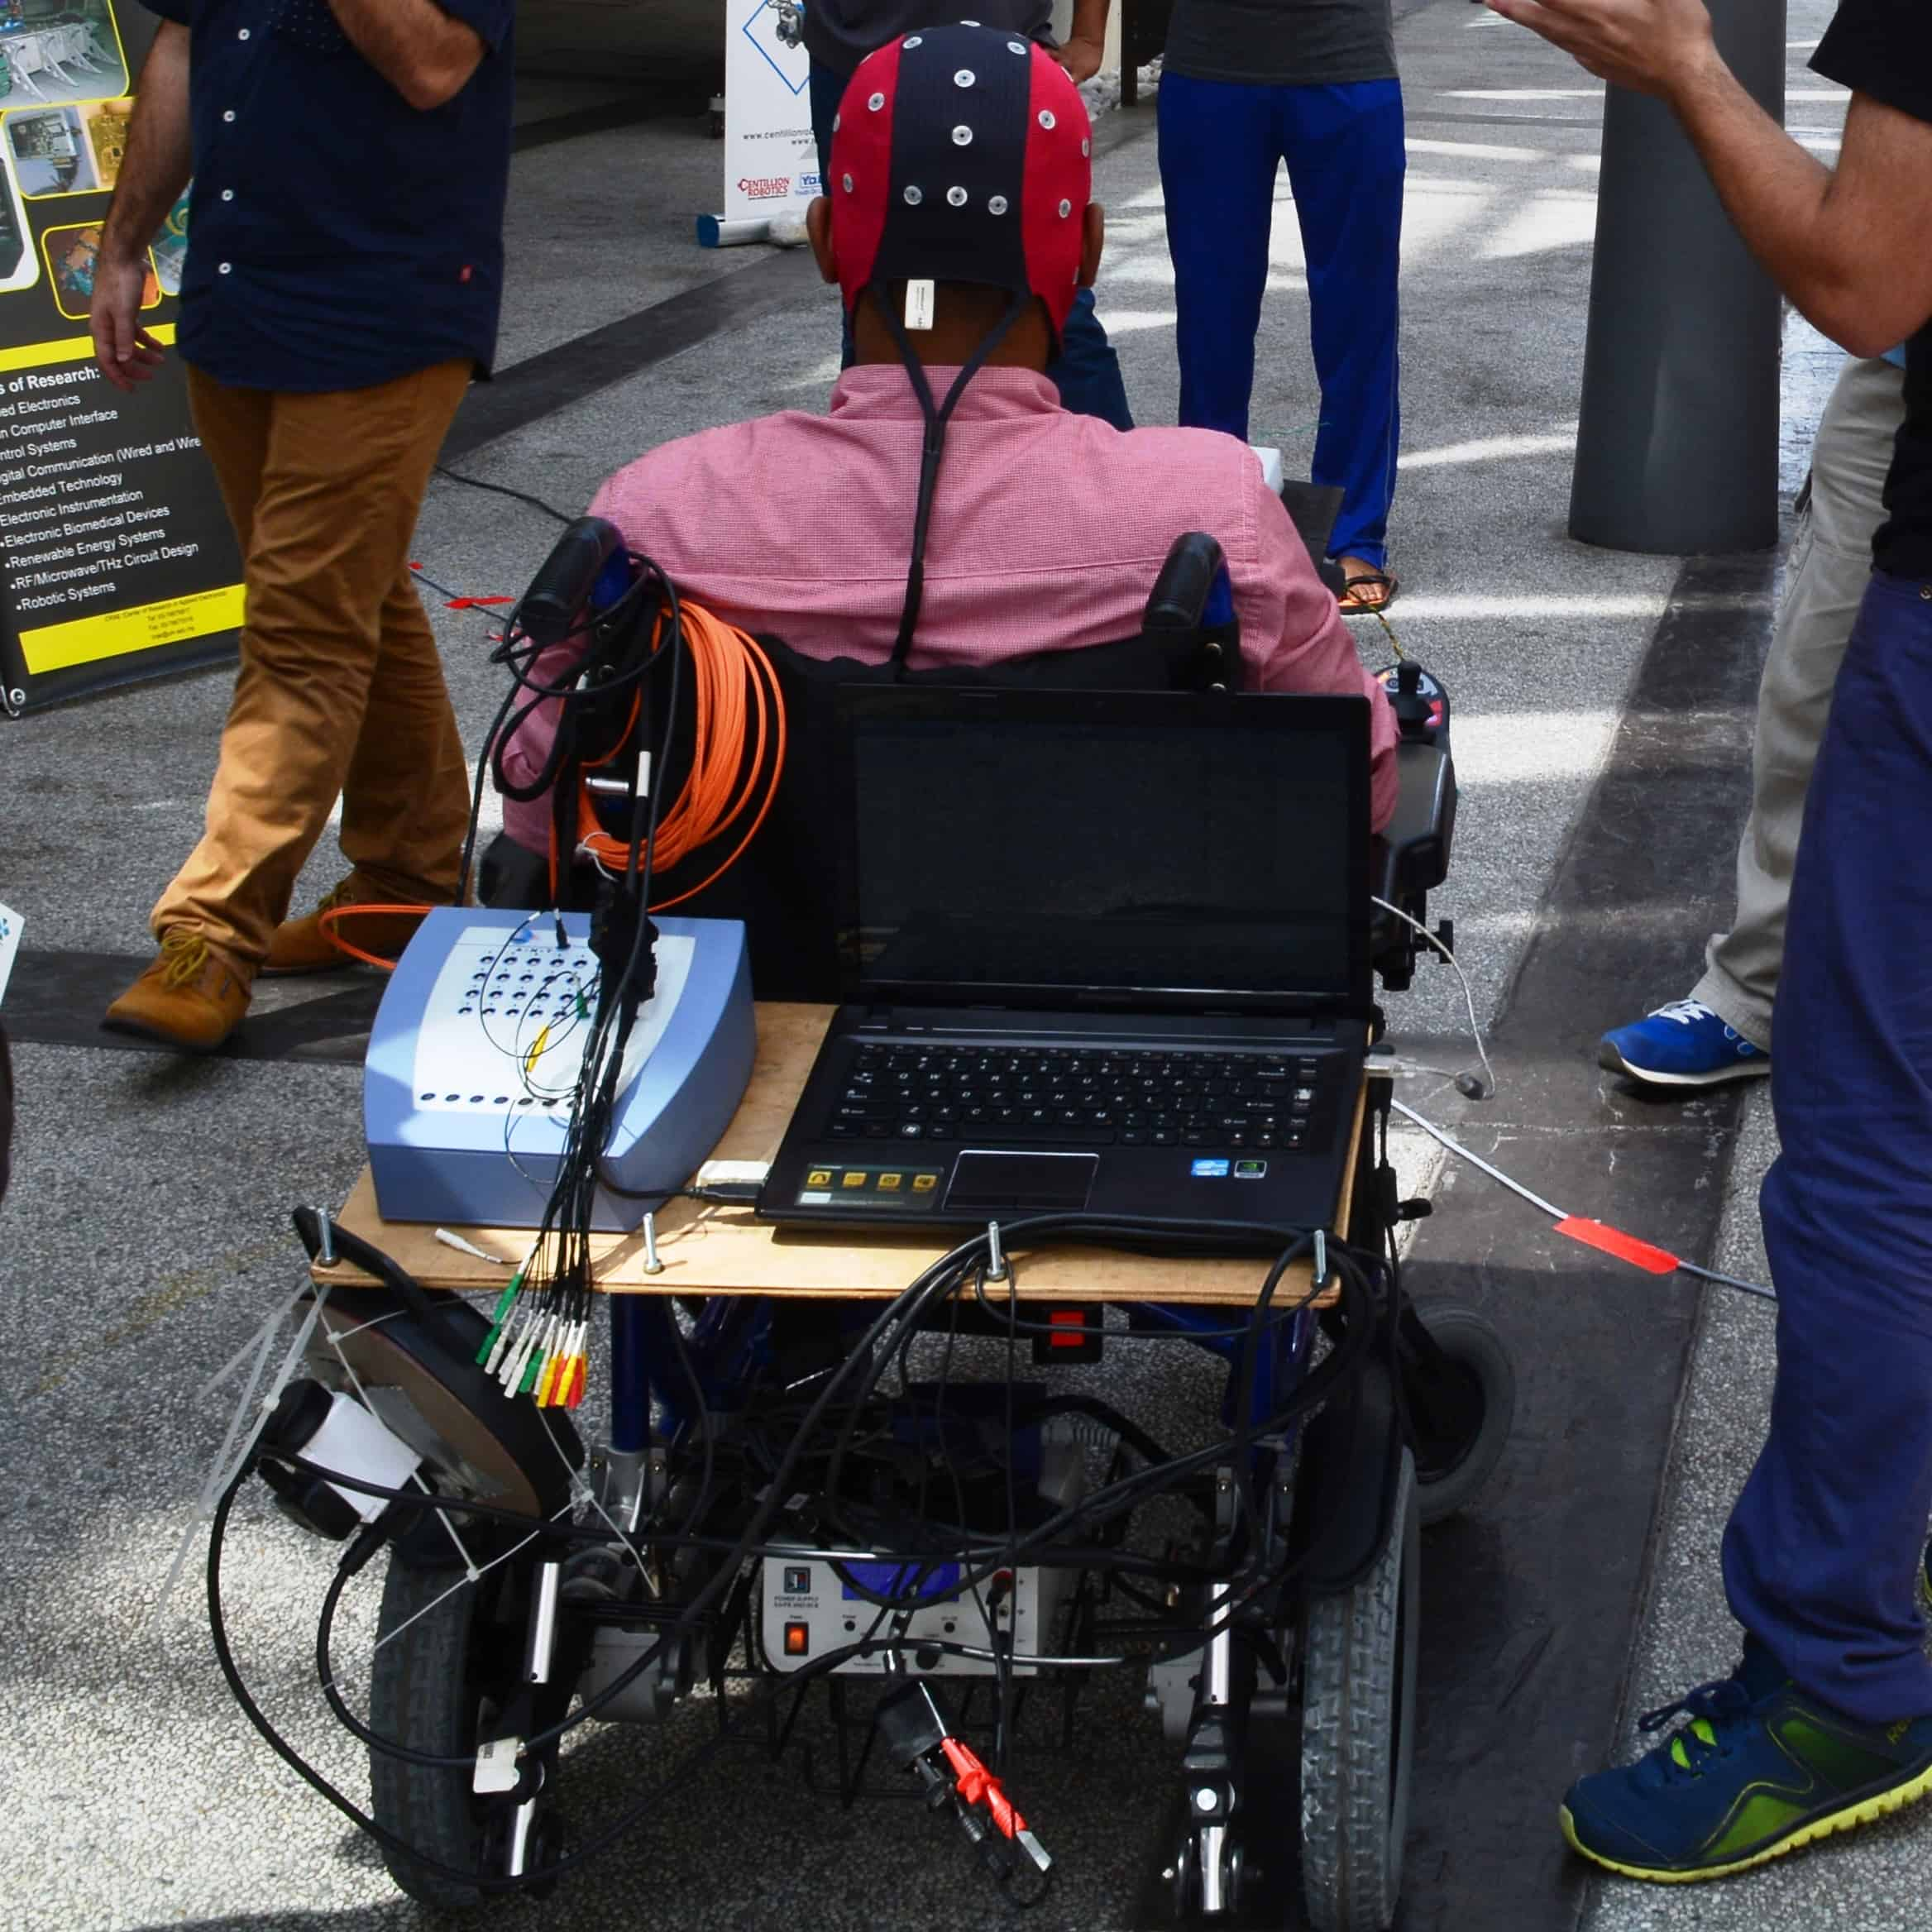 wheelchair project baby bamboo chair singapore brain operated crae tech